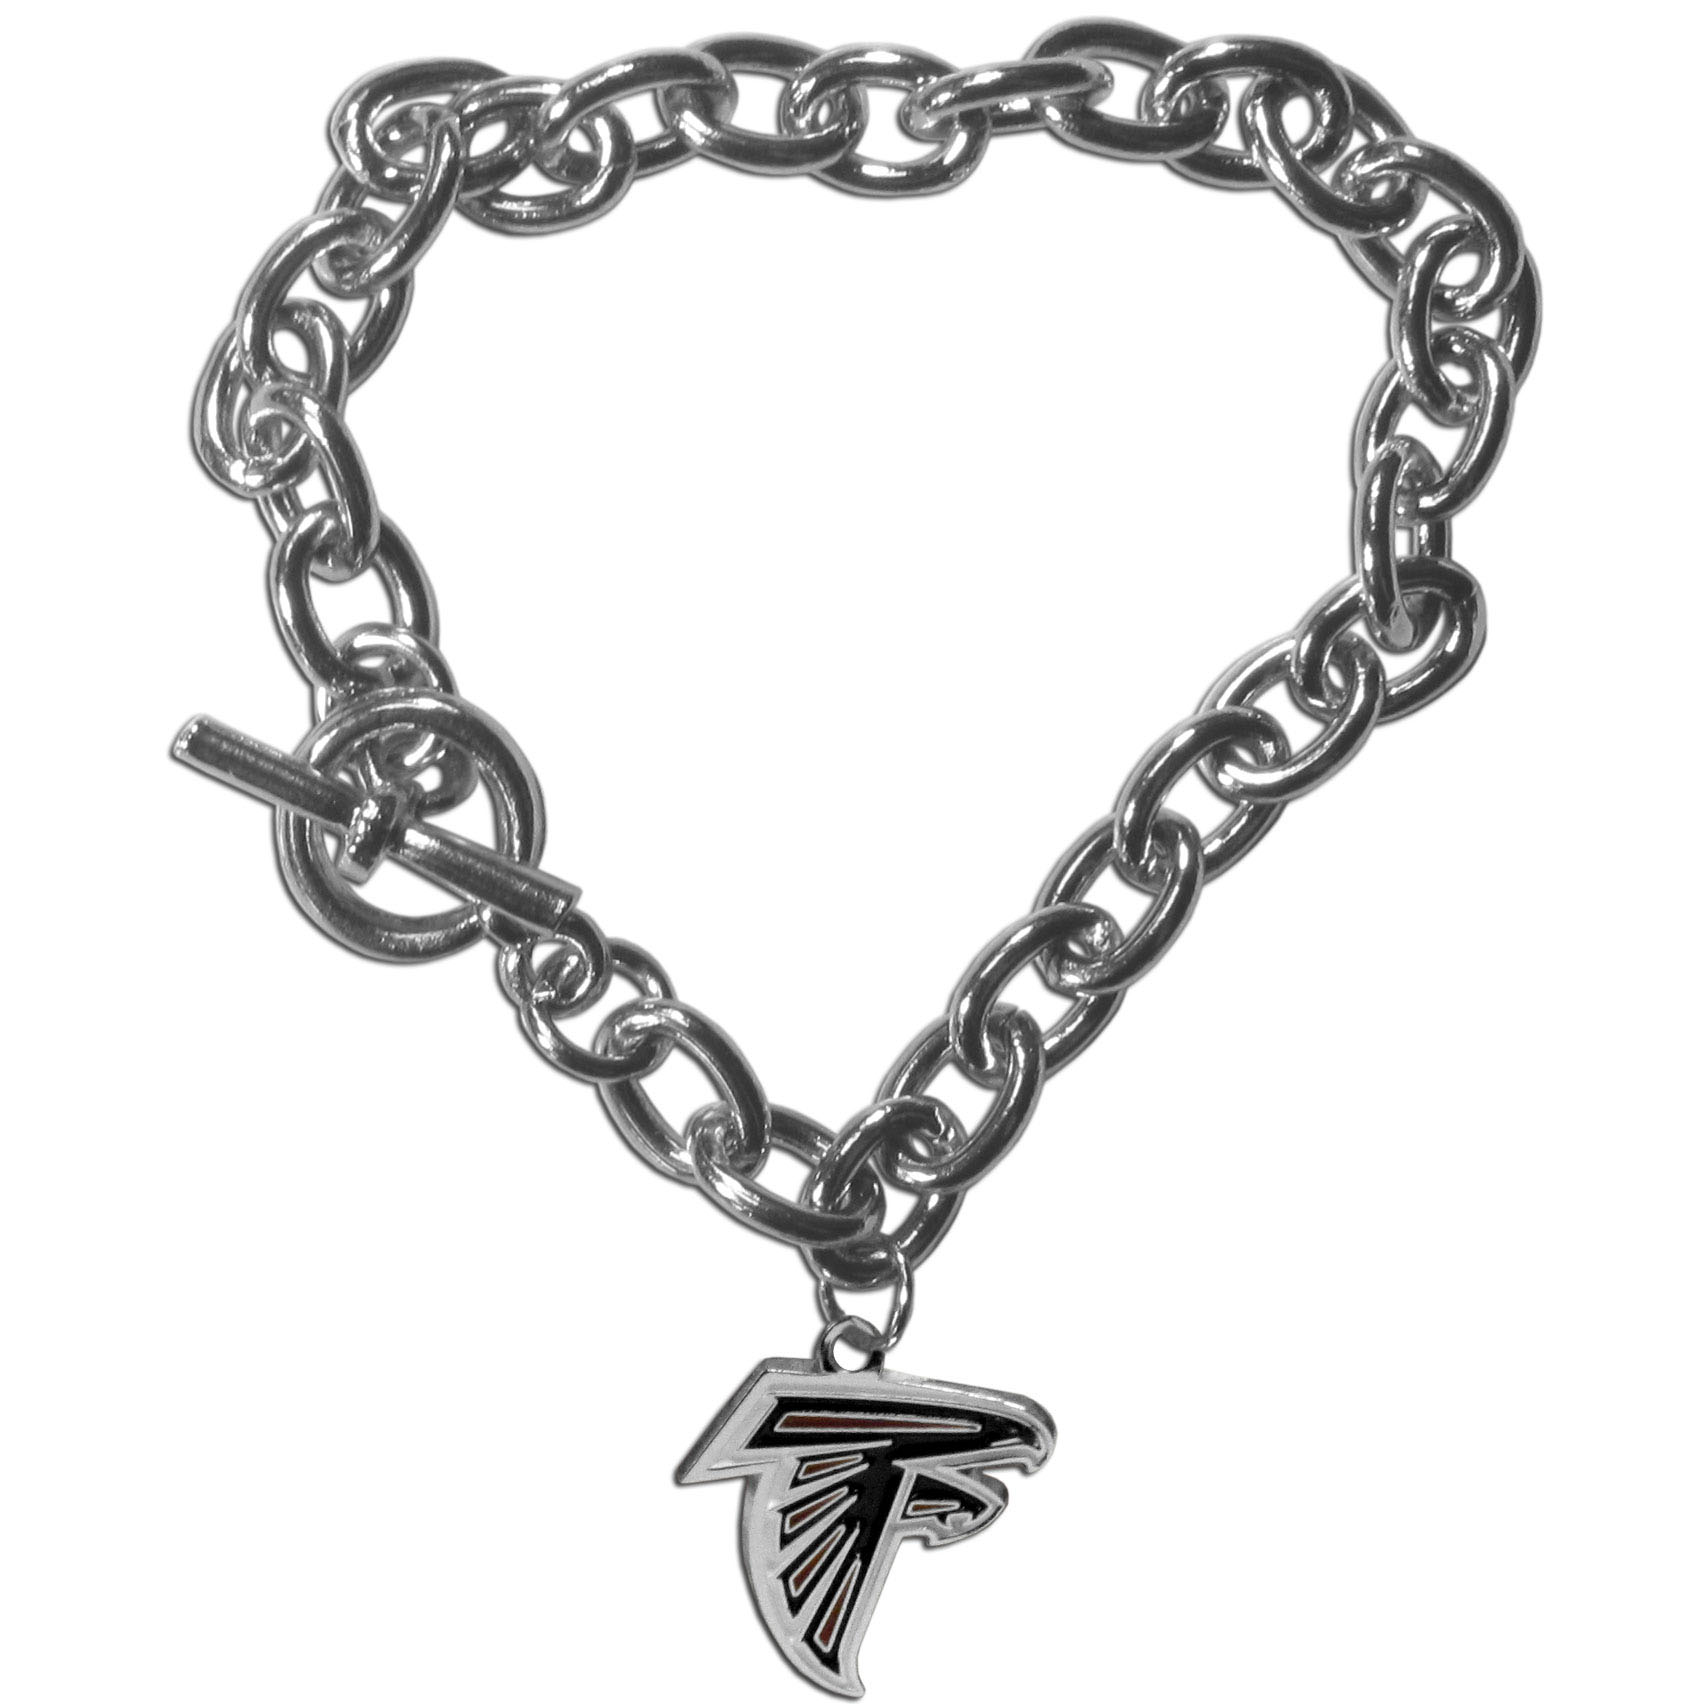 Atlanta Falcons Charm Chain Bracelet - Our classic single charm bracelet is a great way to show off your team pride! The 7.5 inch large link chain features a high polish Atlanta Falcons charm and features a toggle clasp which makes it super easy to take on and off.